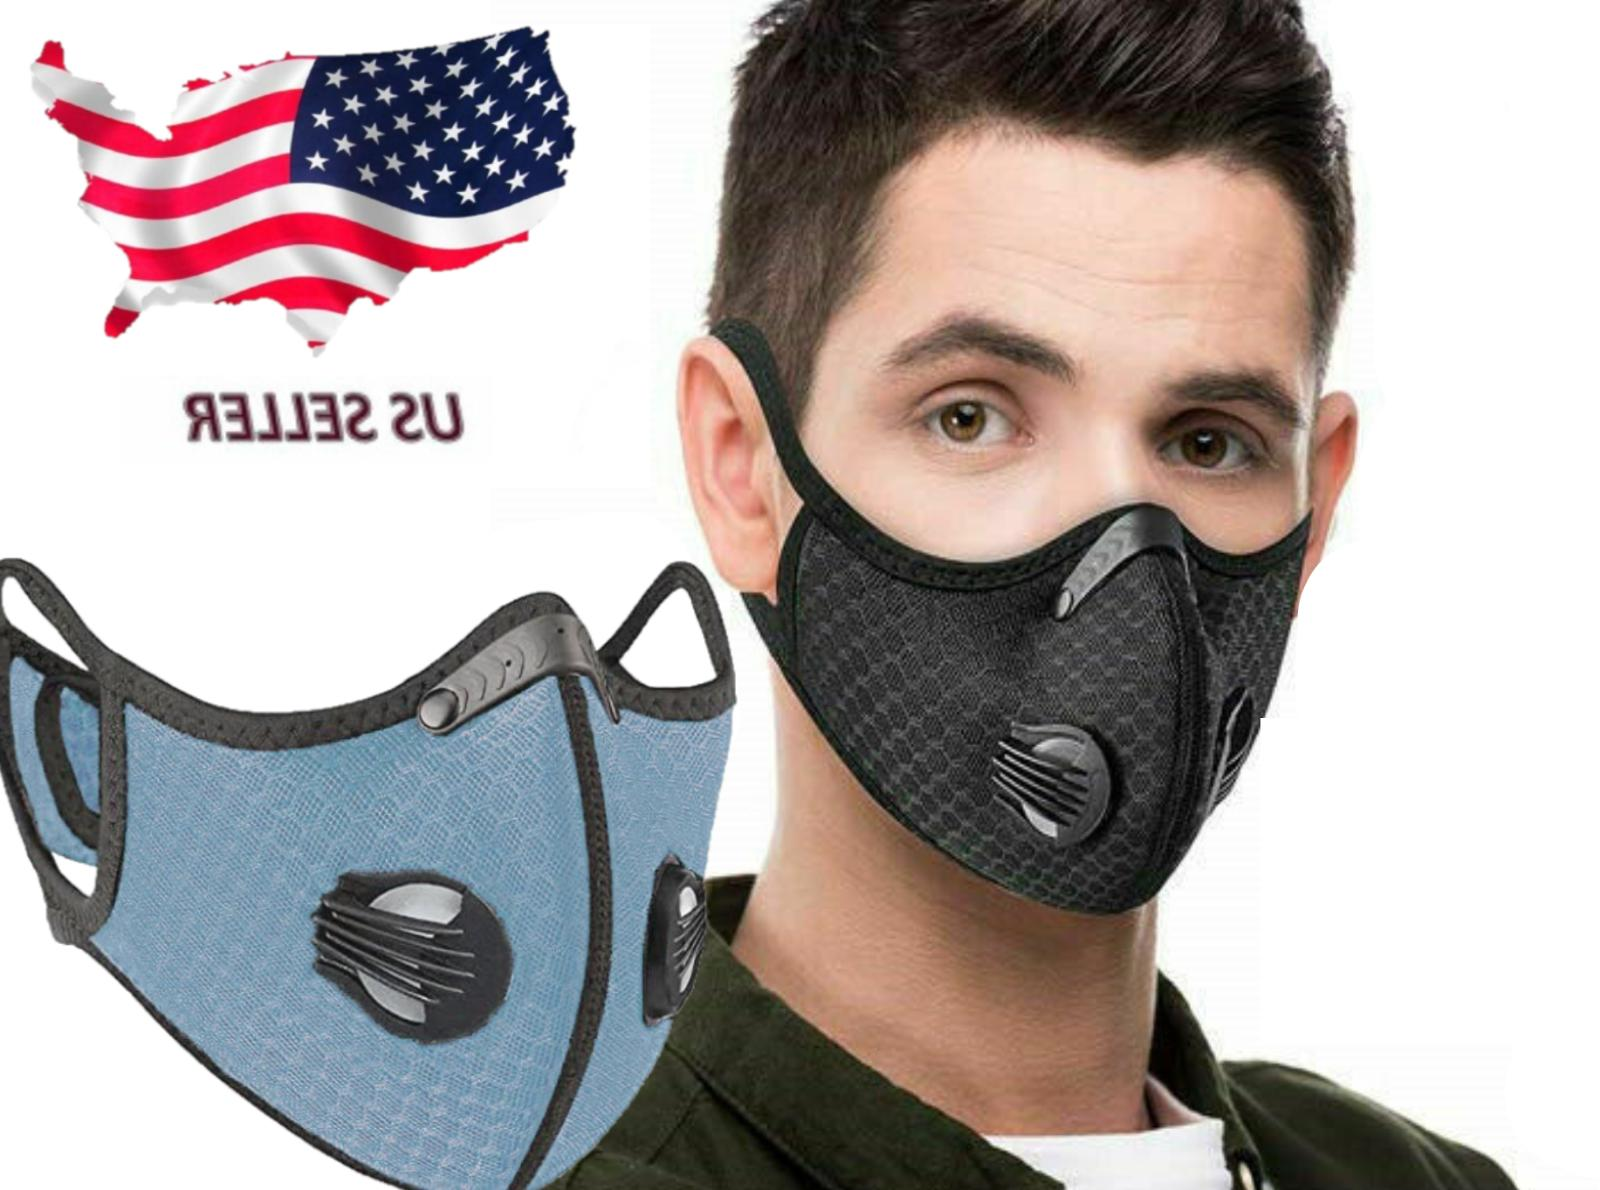 USA Mask With Air Breathe Vents